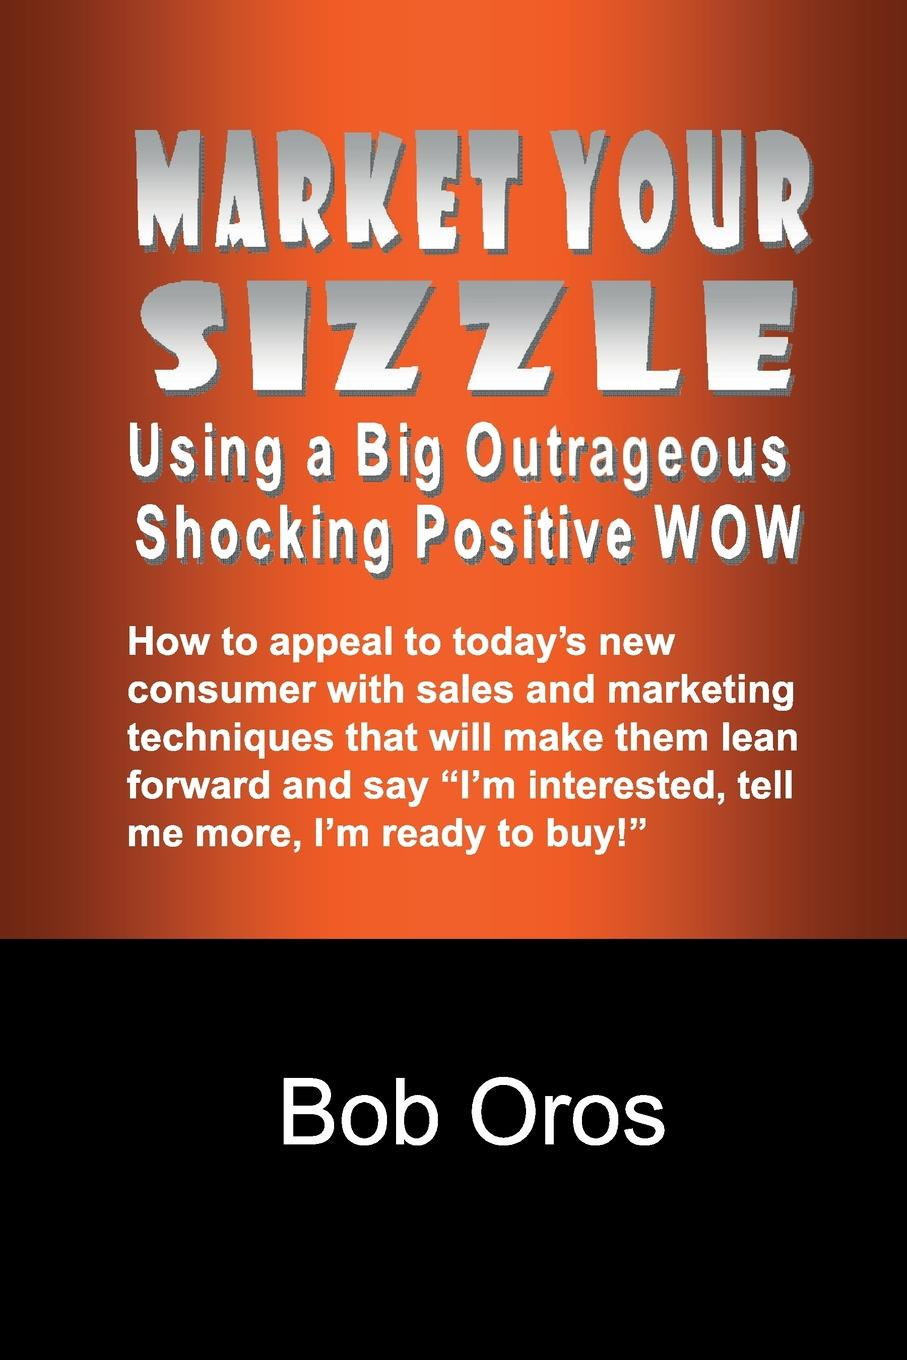 Bob Oros Market Your Sizzle Using a Big Outrageous Shocking Positive Wow harry friedman j no thanks i m just looking sales techniques for turning shoppers into buyers